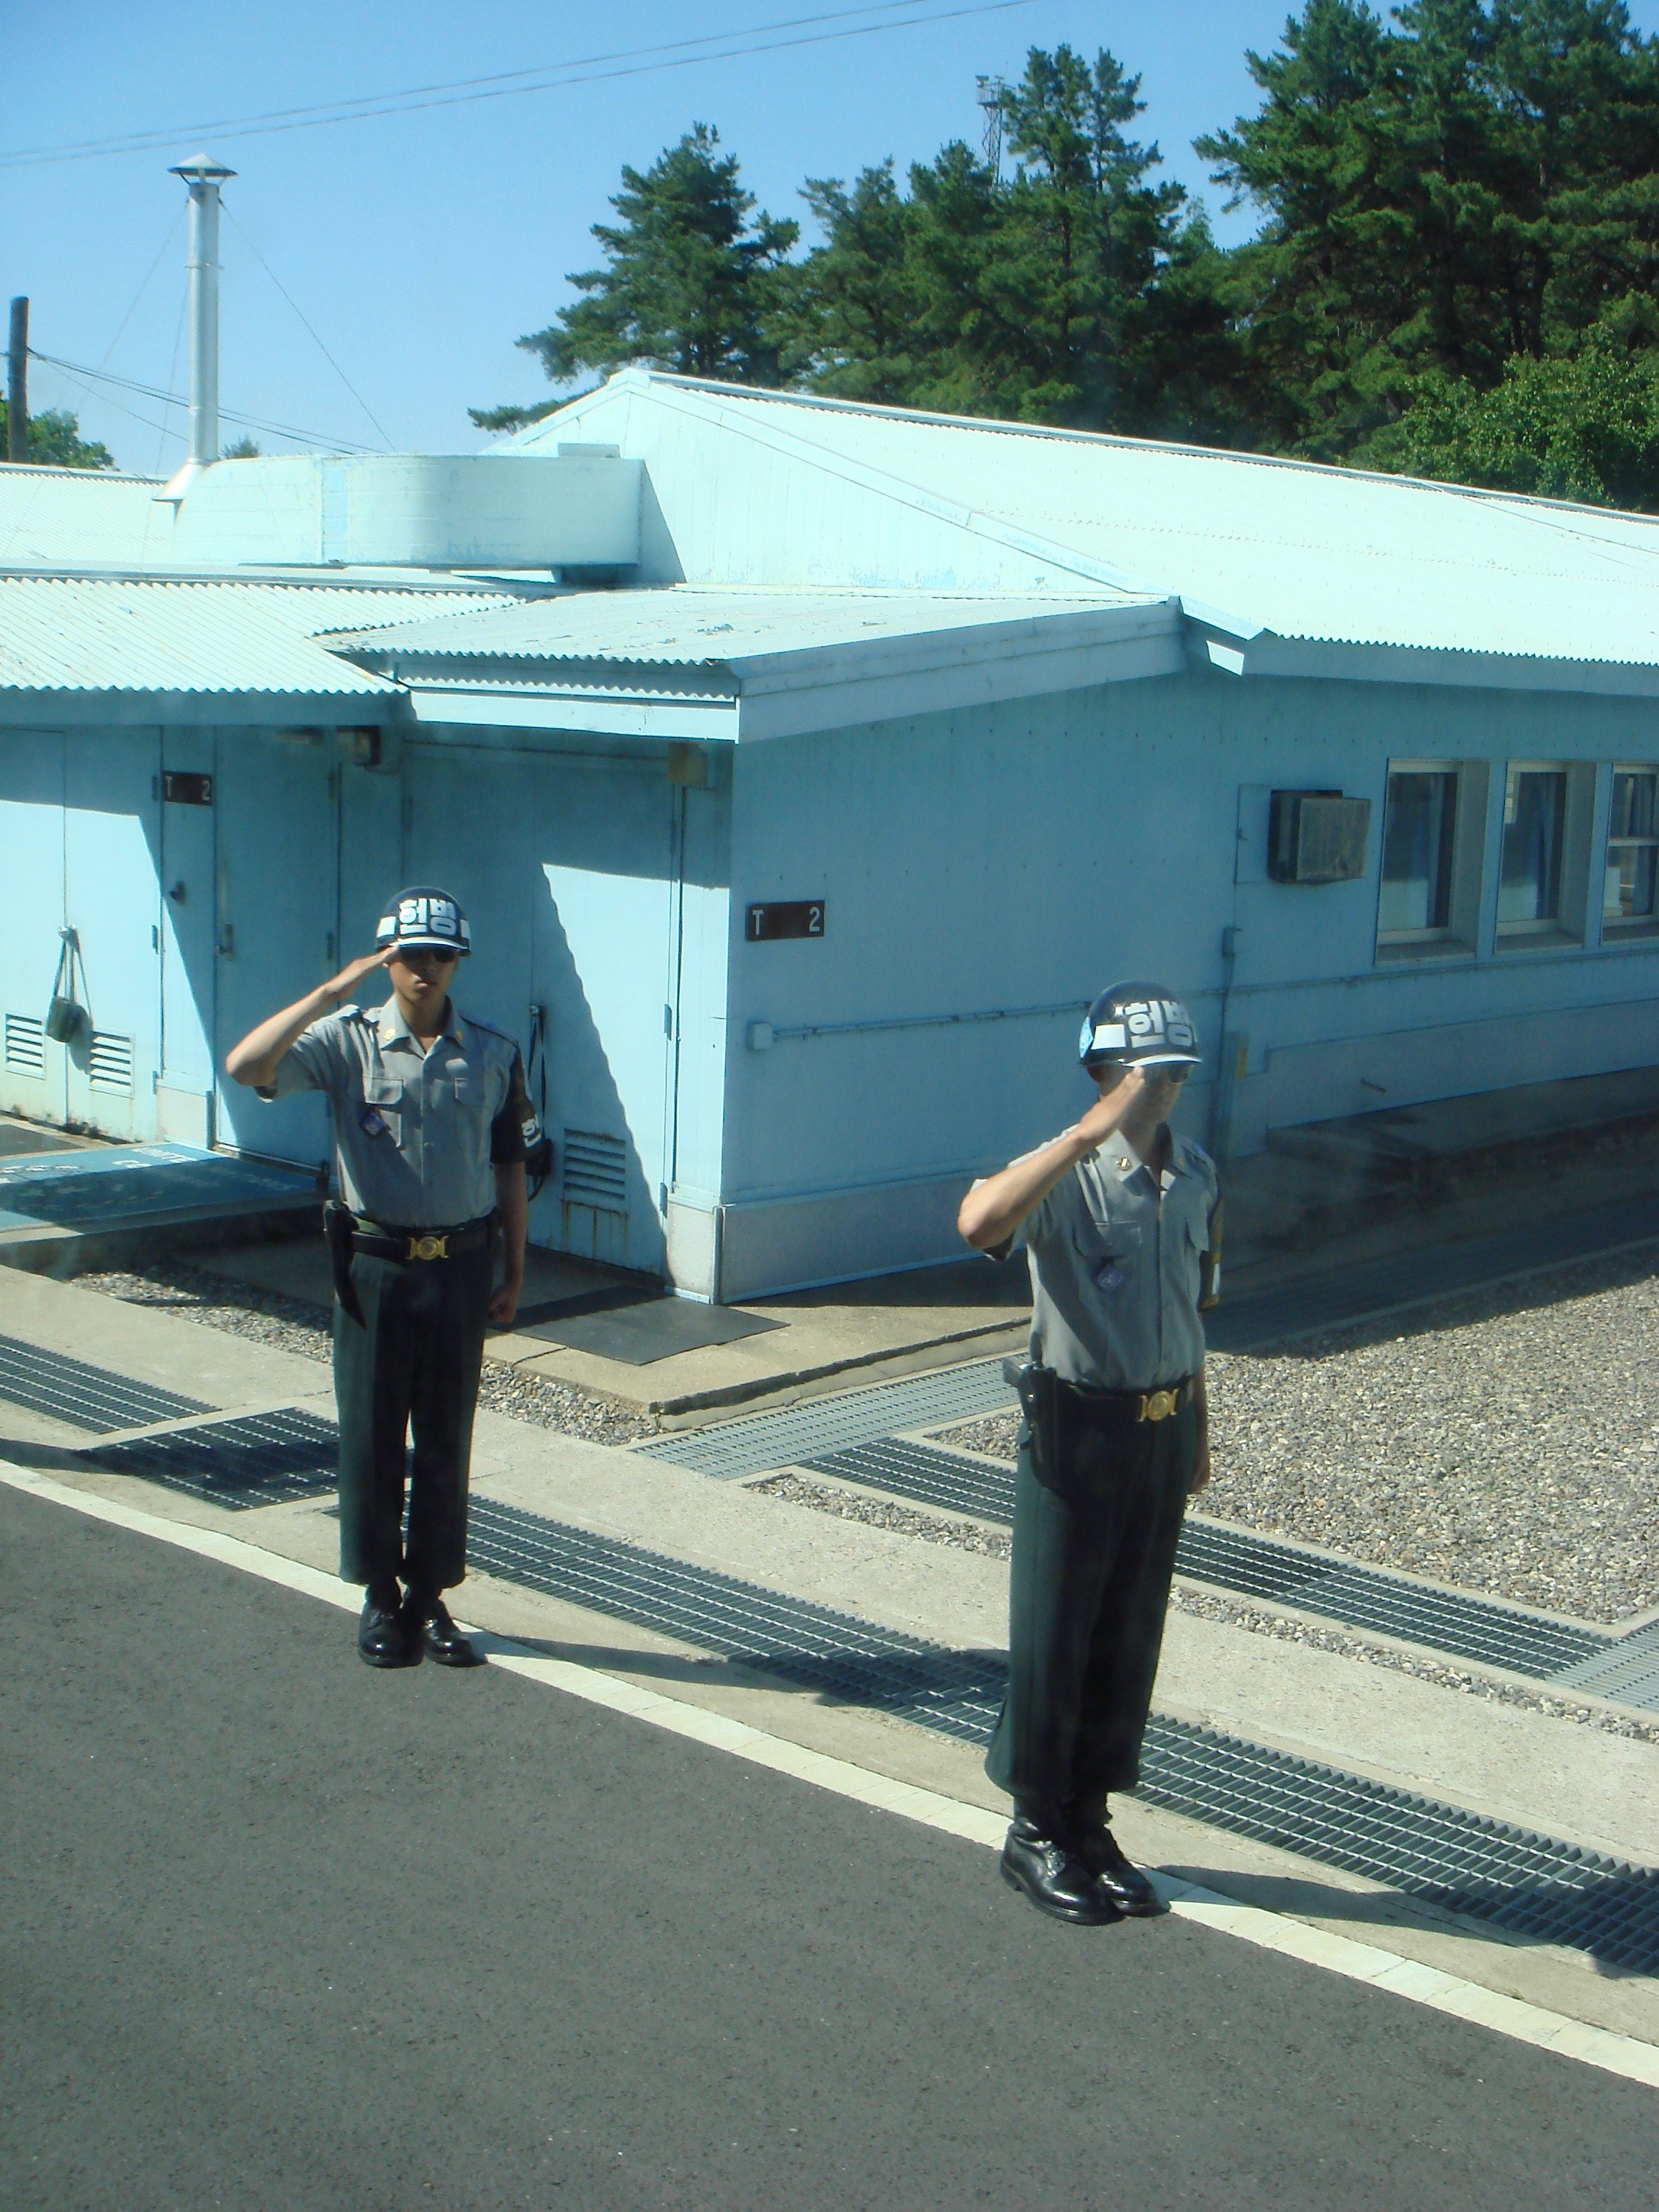 South Korean soldiers saluting our bus as we drove away from the JSA.